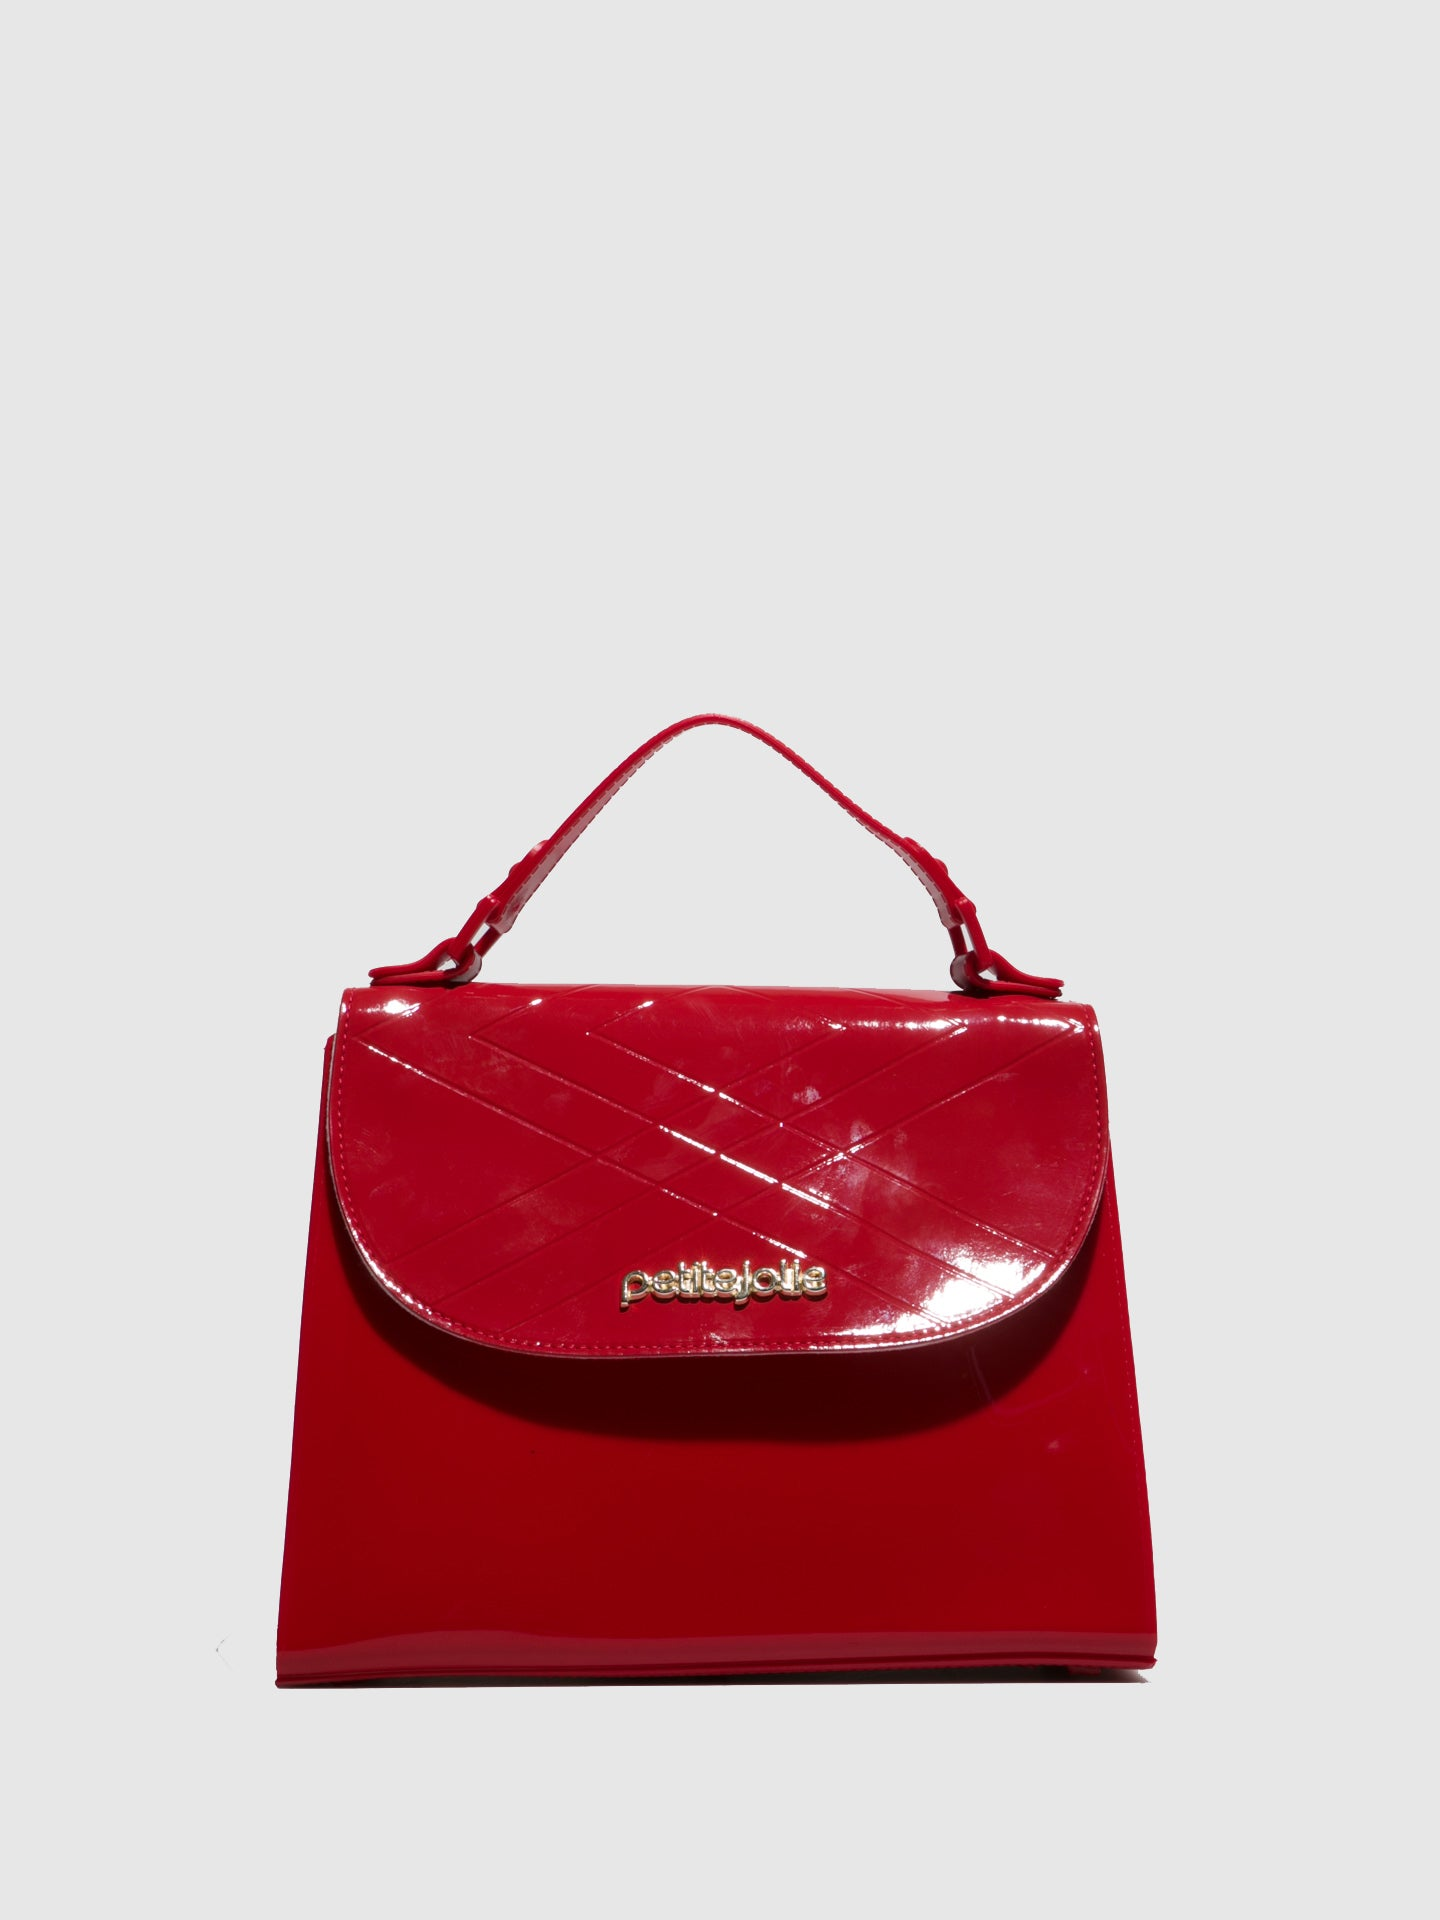 Petite Jolie By Parodi Red Handbag